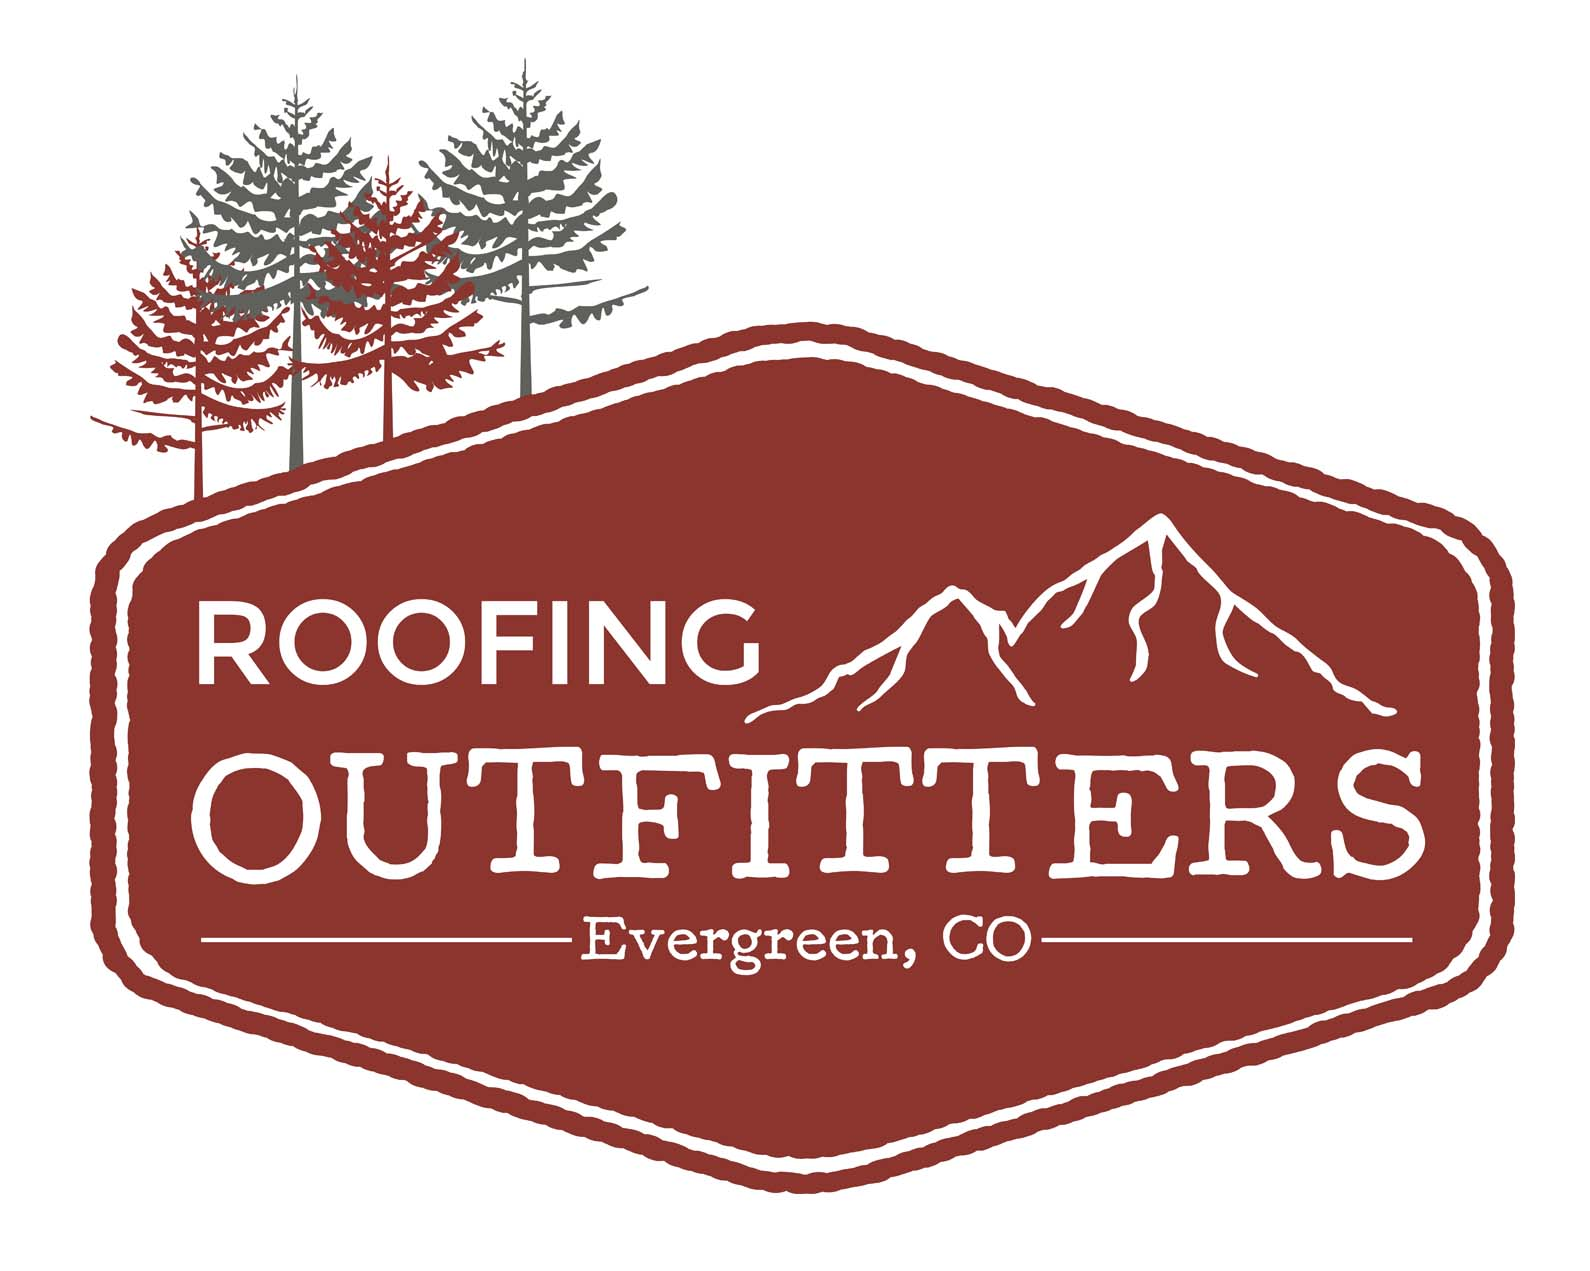 Roofing Outfitters.jpg